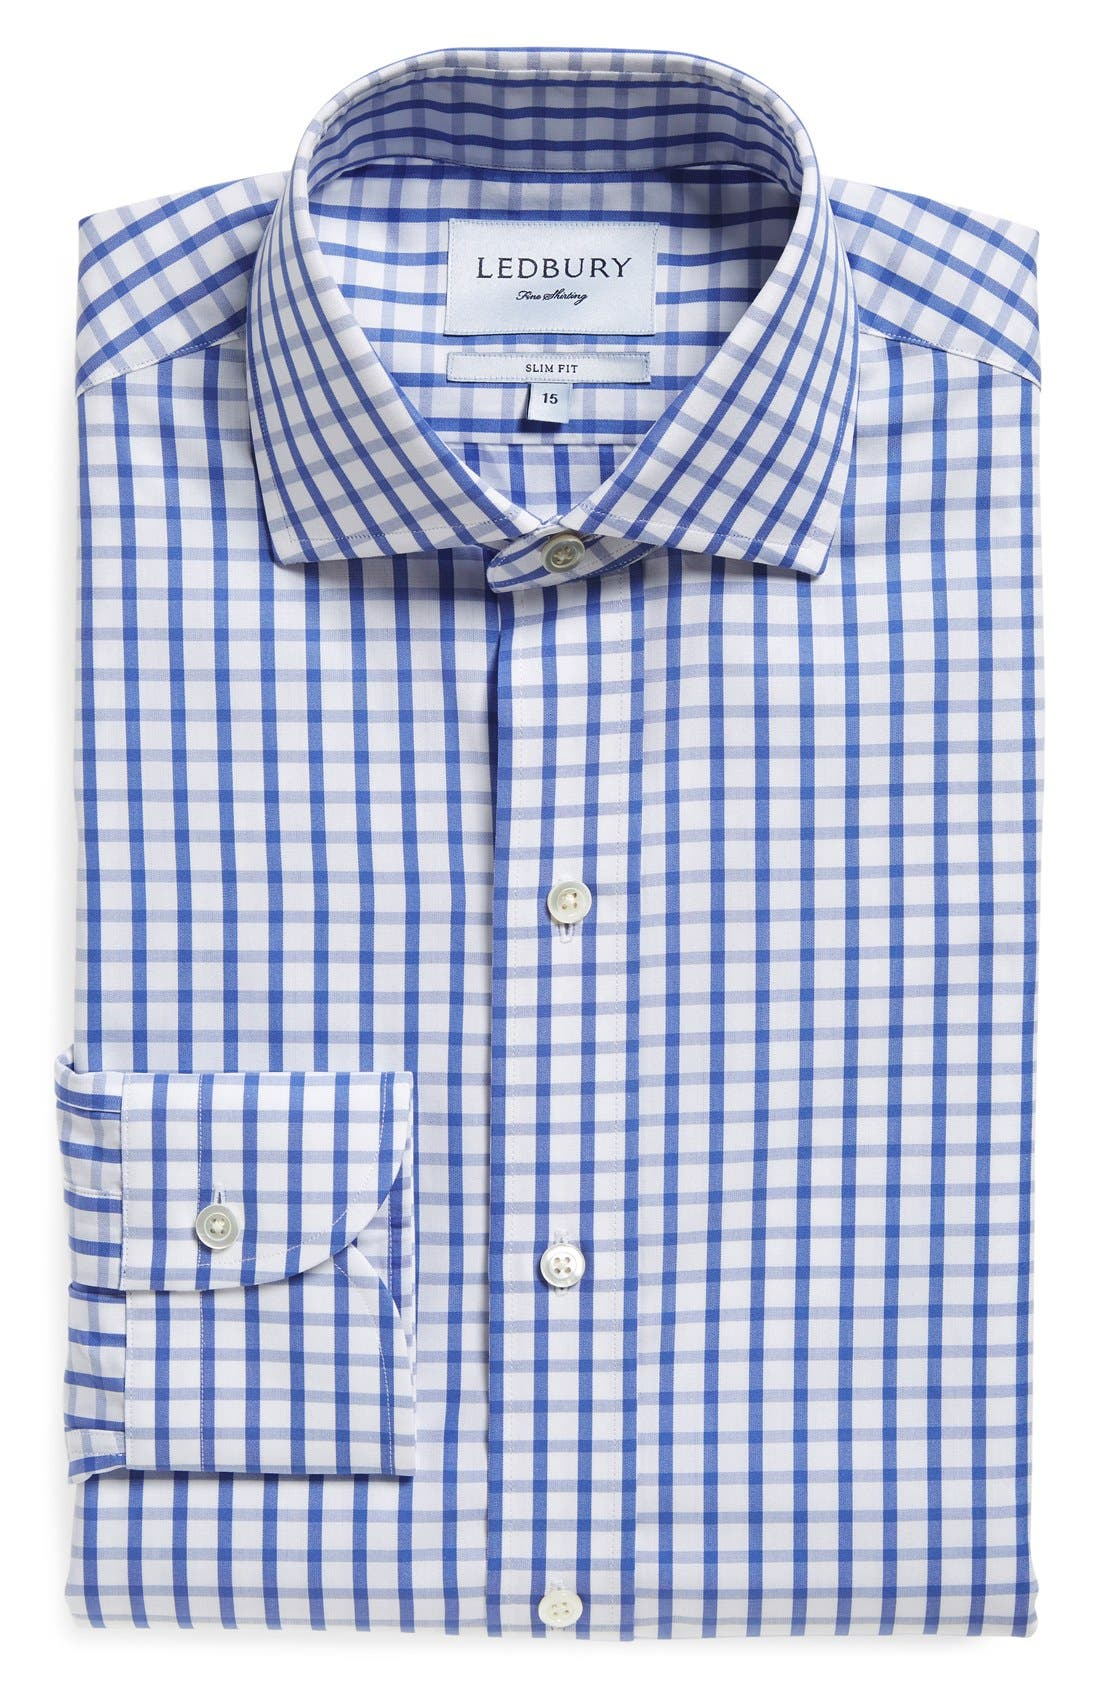 'Urbana Box' Slim Fit Check Dress Shirt,                             Main thumbnail 1, color,                             BLUE